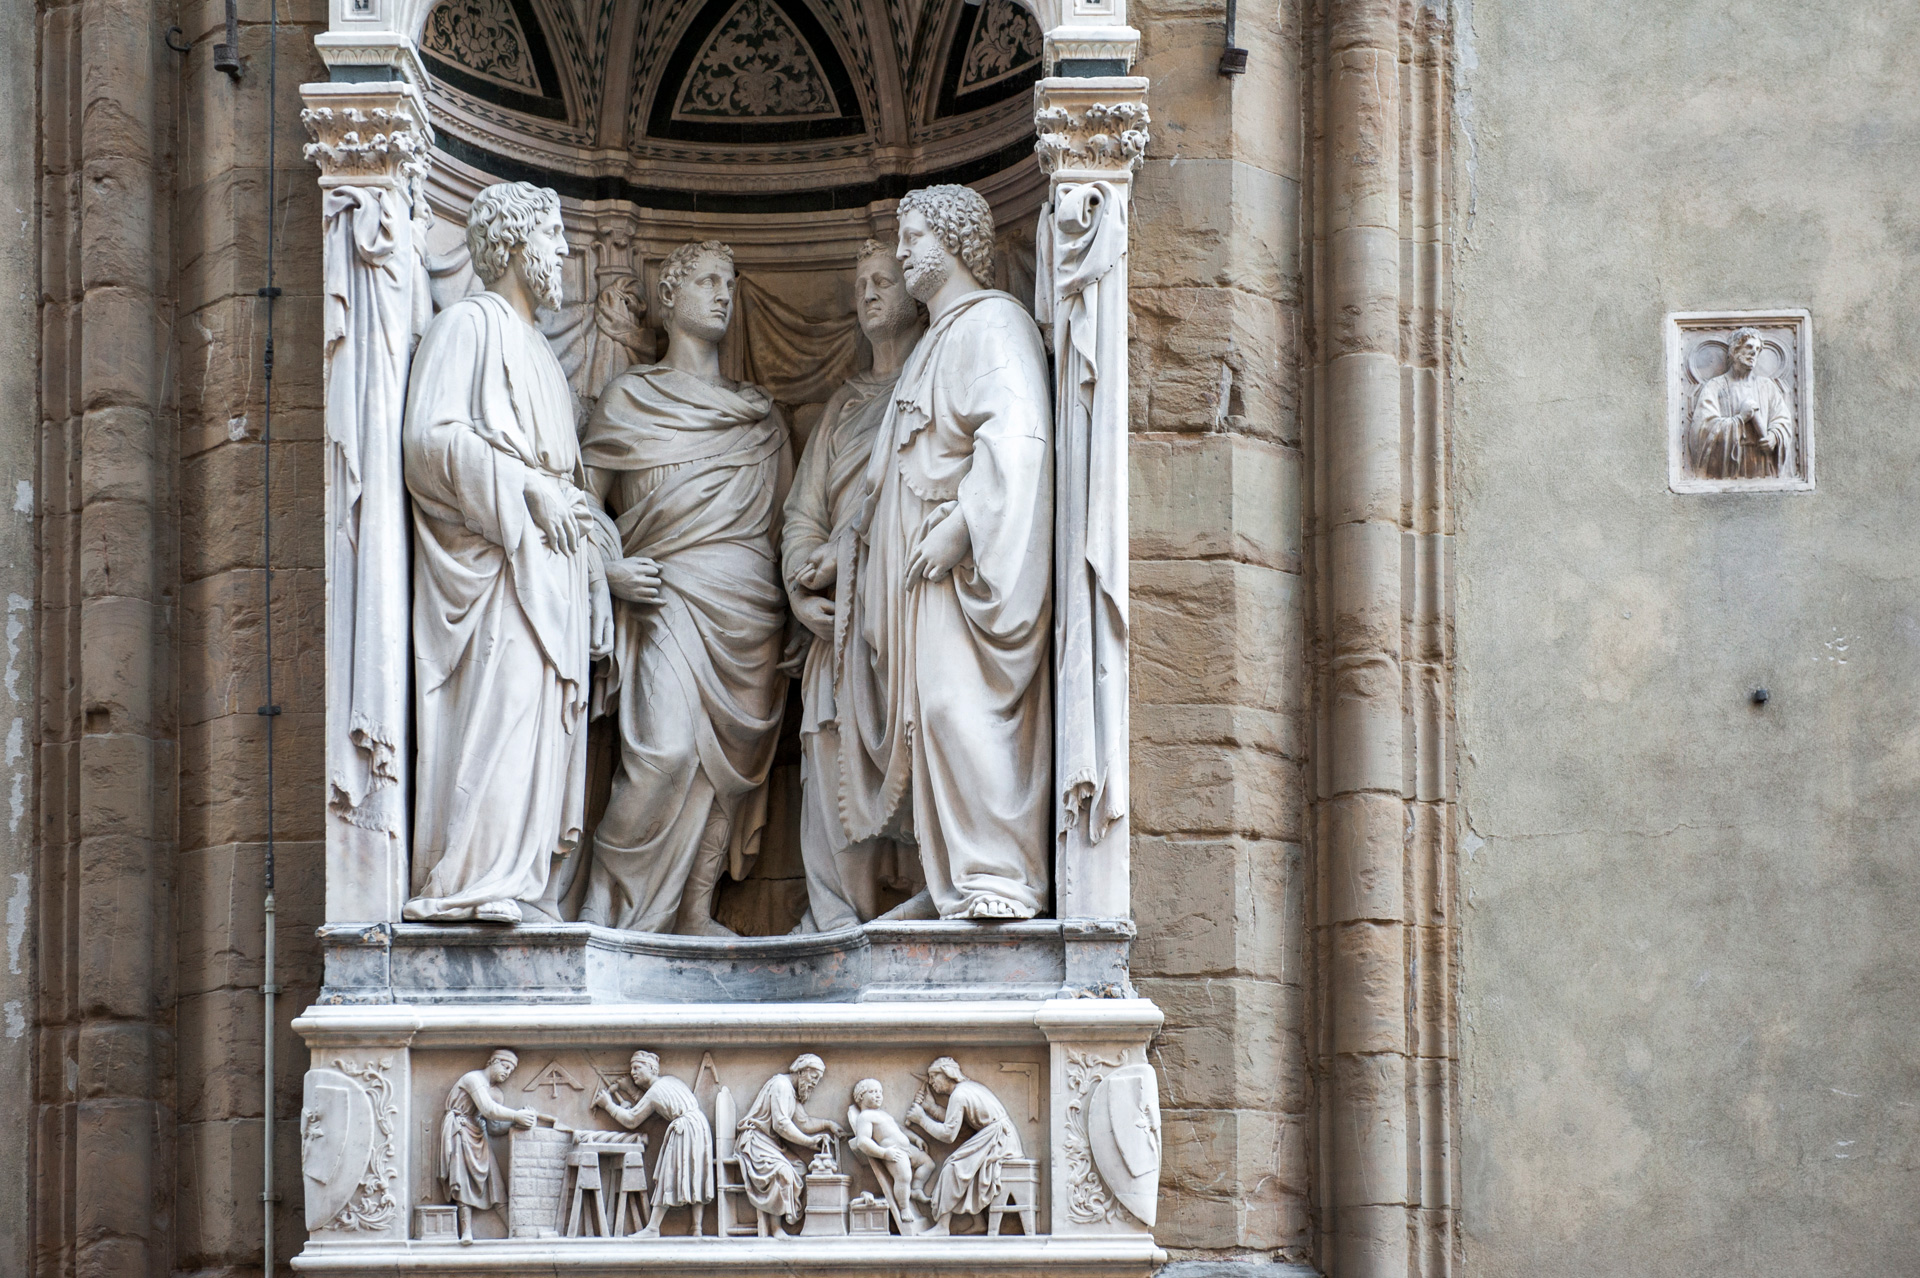 Statue if the facade of Orsanmichele church in florence